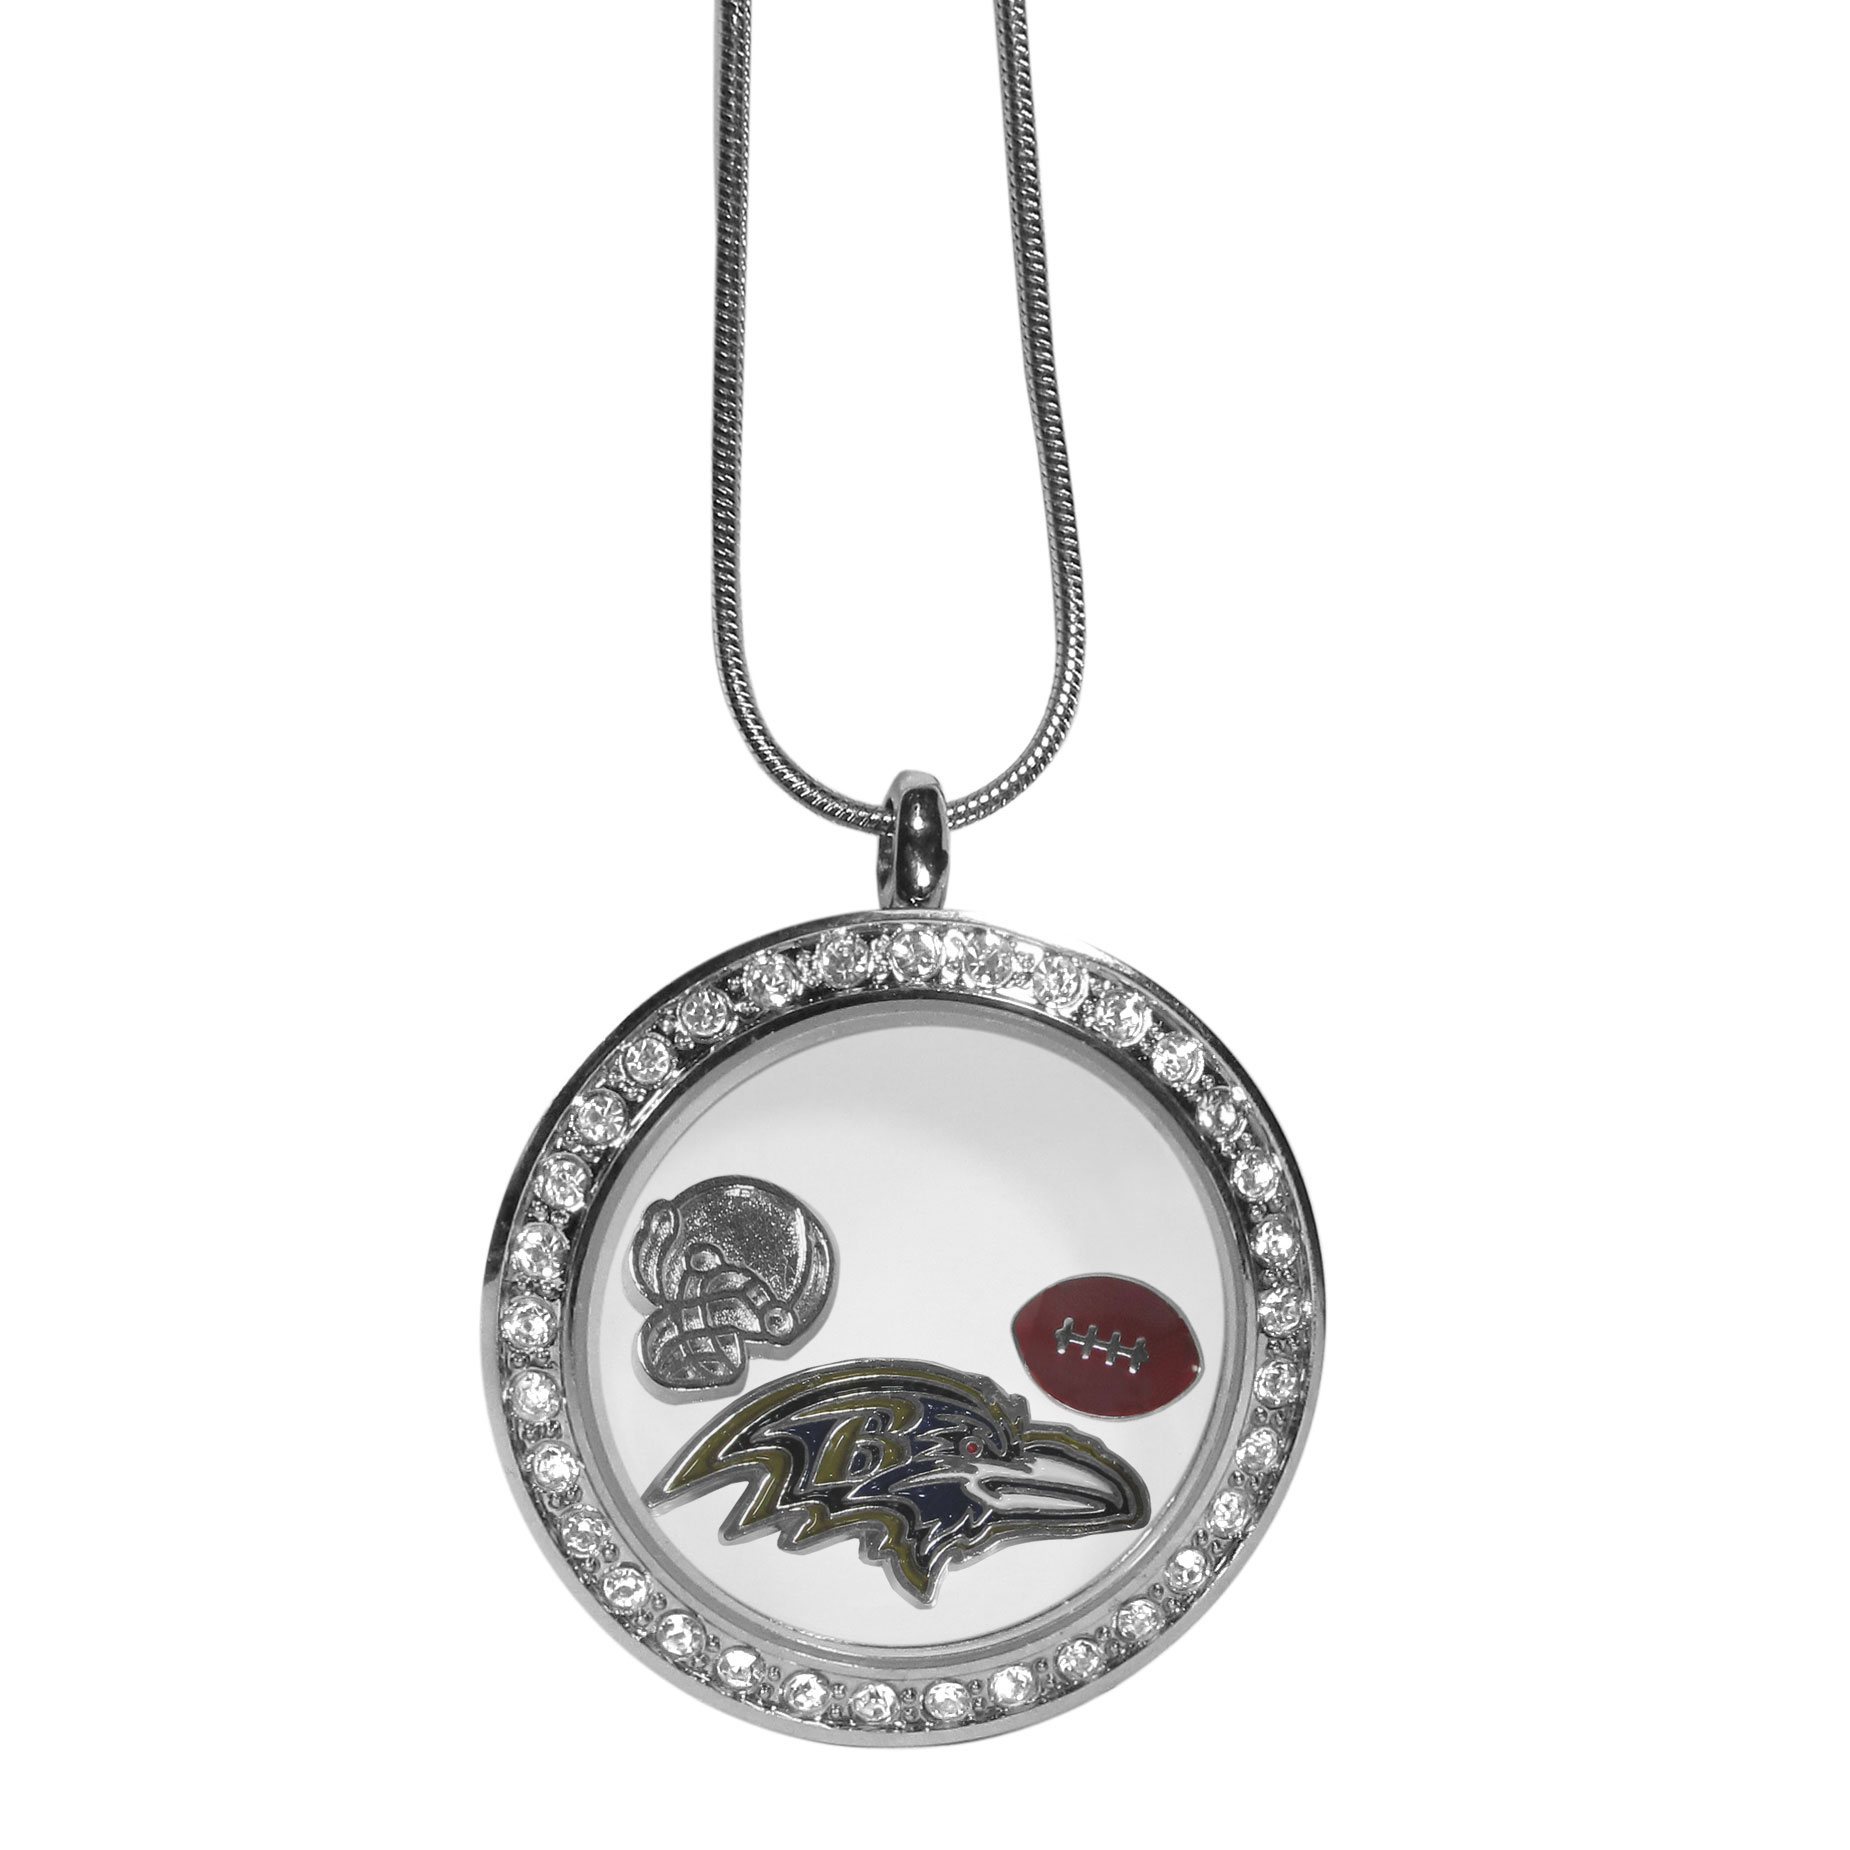 Baltimore Ravens Locket Necklace - We have taken the classic floating charm locket and combined with licensed sports charms to create a must have fan necklace. The necklace comes with 3 charms; 1 Baltimore Ravens charm, one football charm and one helmet charm. The charms float in a beautiful locket that has a strong magnetic closure with a rhinestone border. The locket comes on an 18 inch snake chain with 2 inch extender.